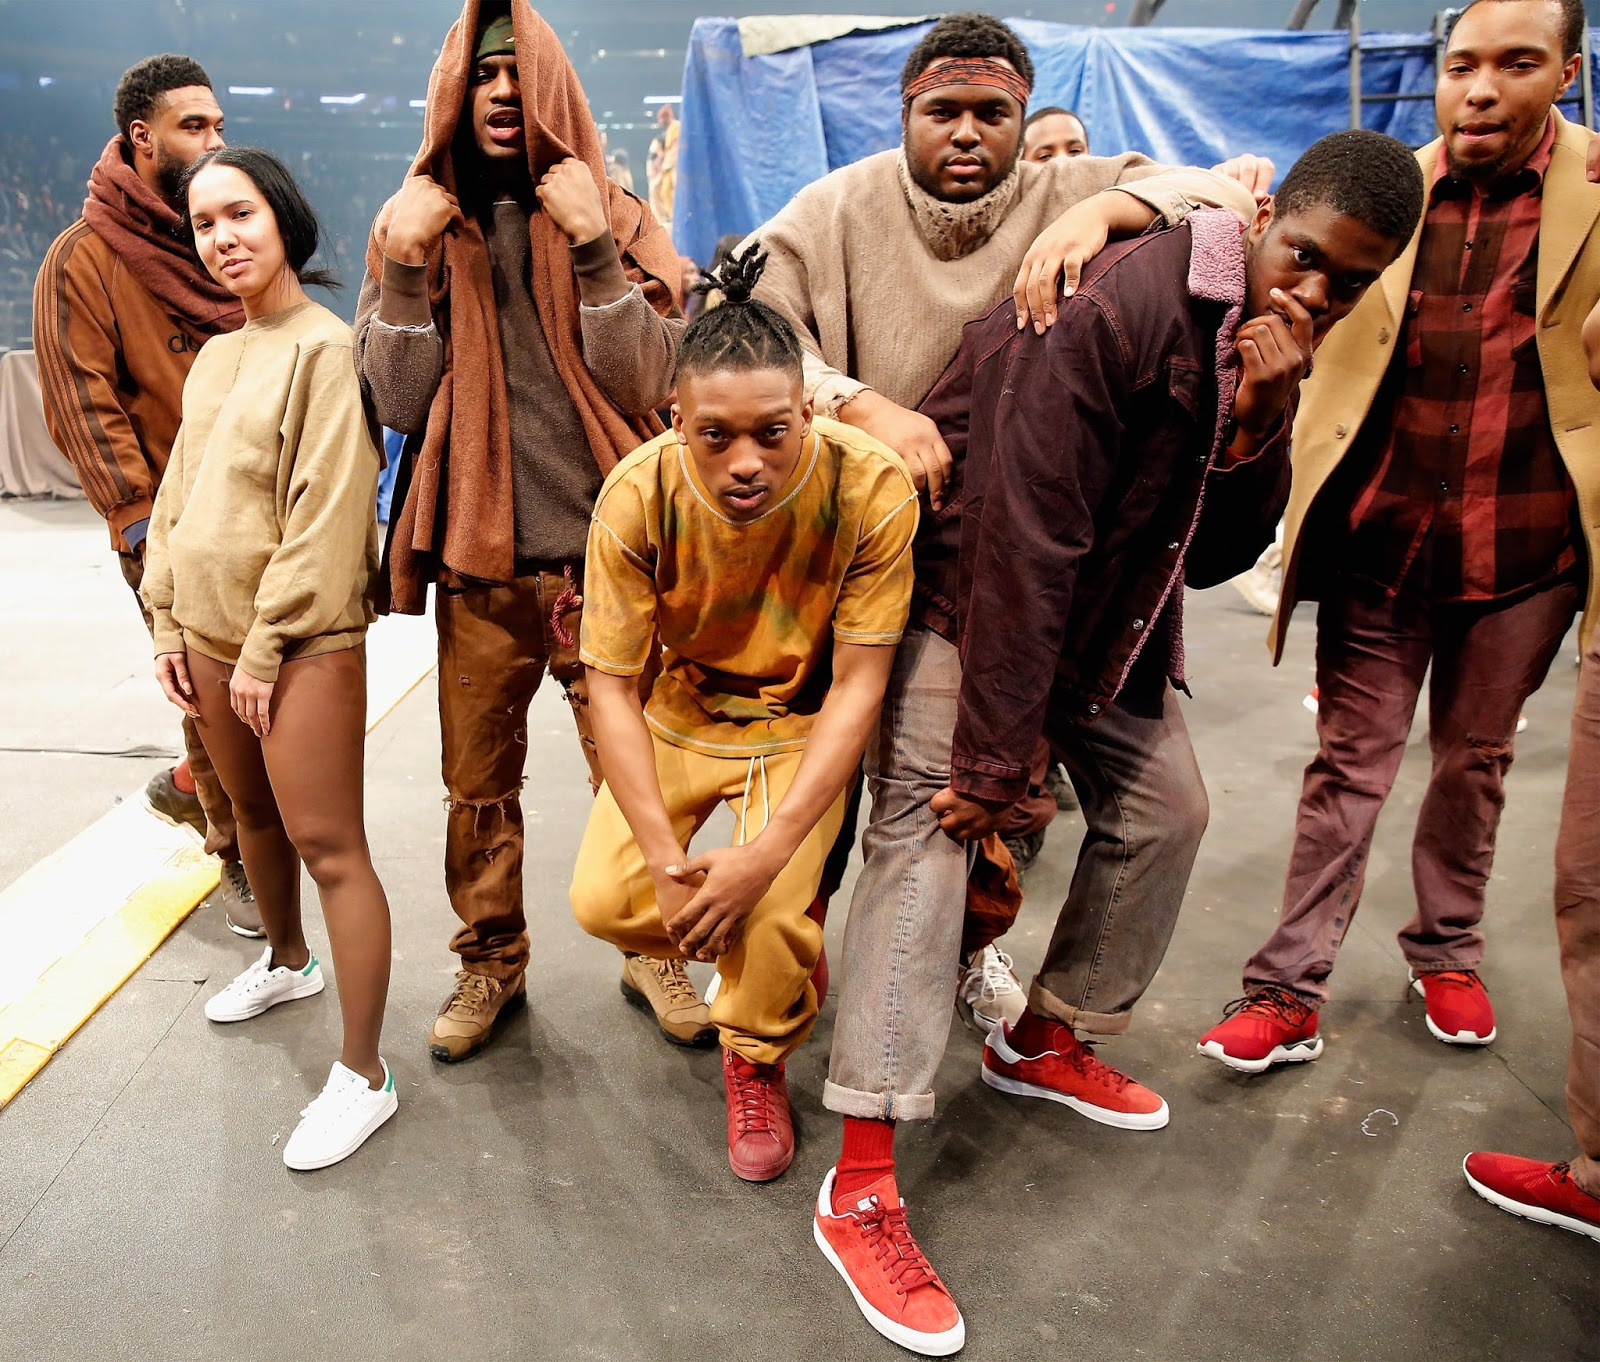 Yeezy Season 3 collection was a total mess